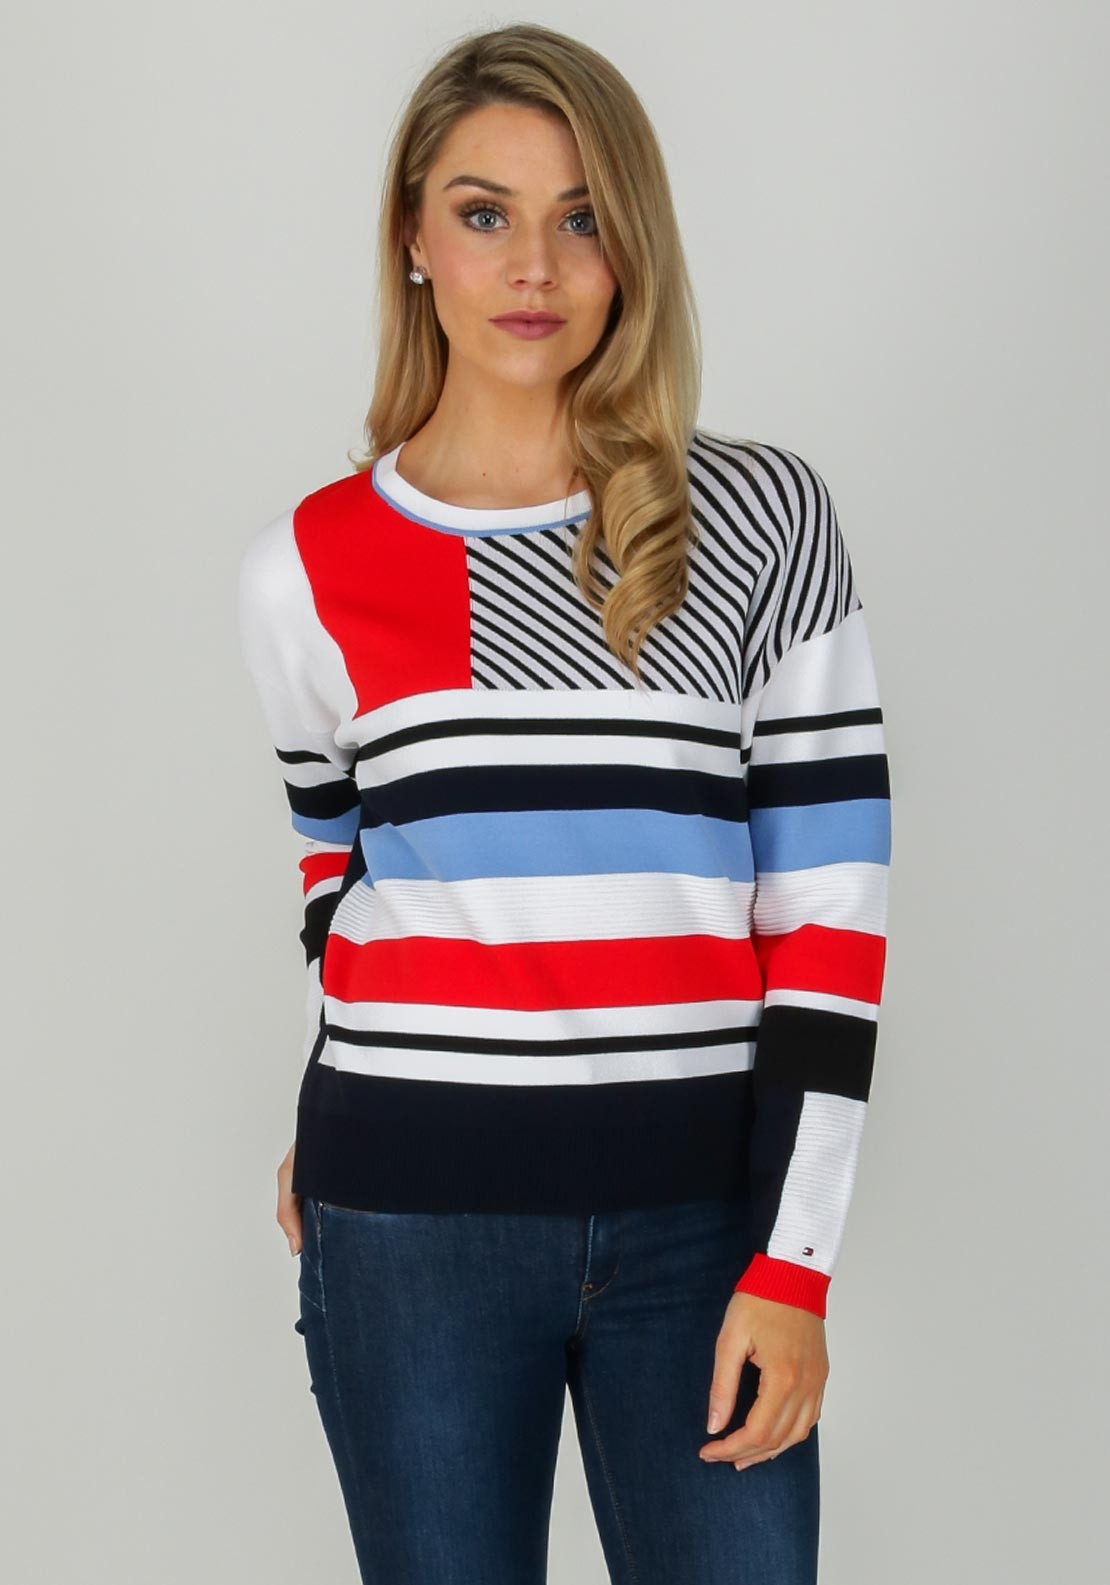 69583c2f30 Tommy Hilfiger Womens Striped Jumper